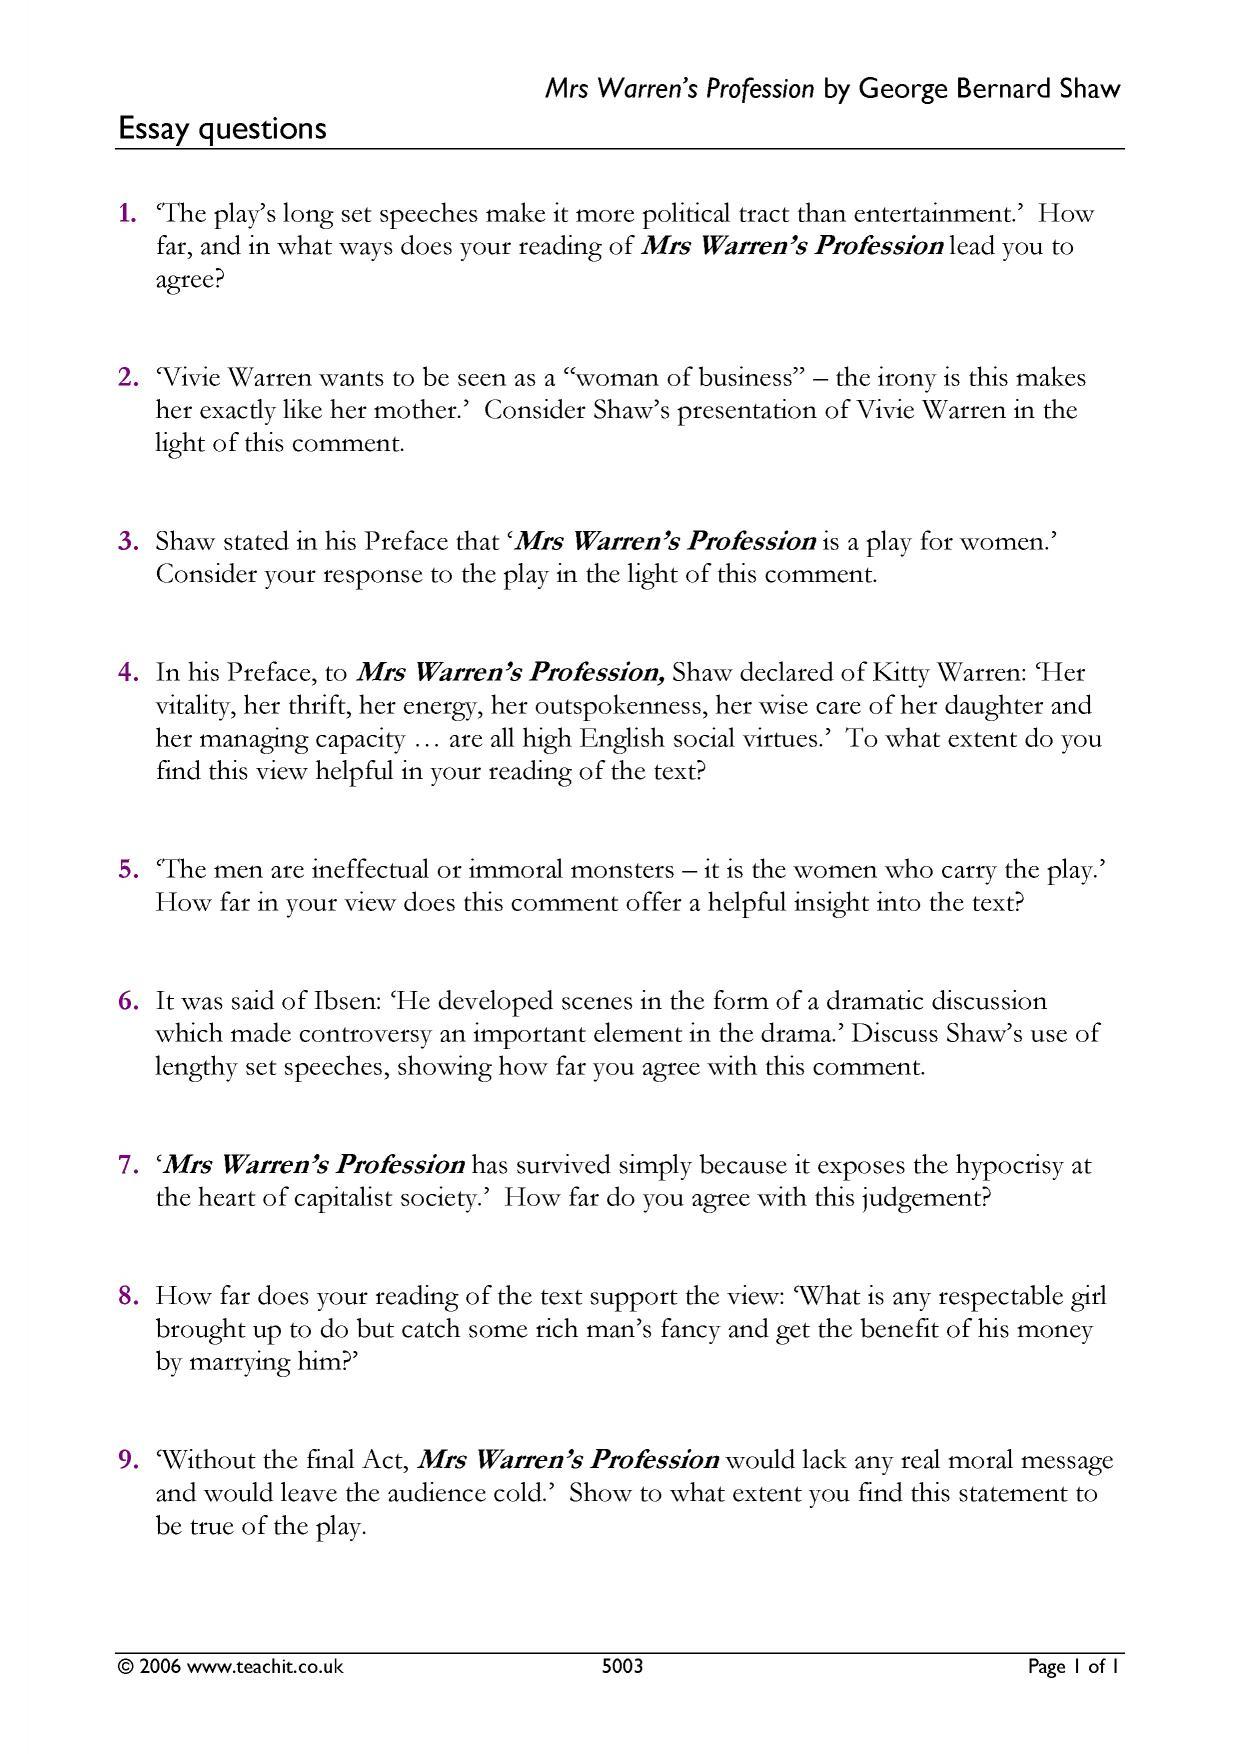 a study of mrs warrens profession essay Mrs warren's profession april 19, 2011 with mrs warren a rough diamond with a devoted if aging male entourage essay culture - feature culture.